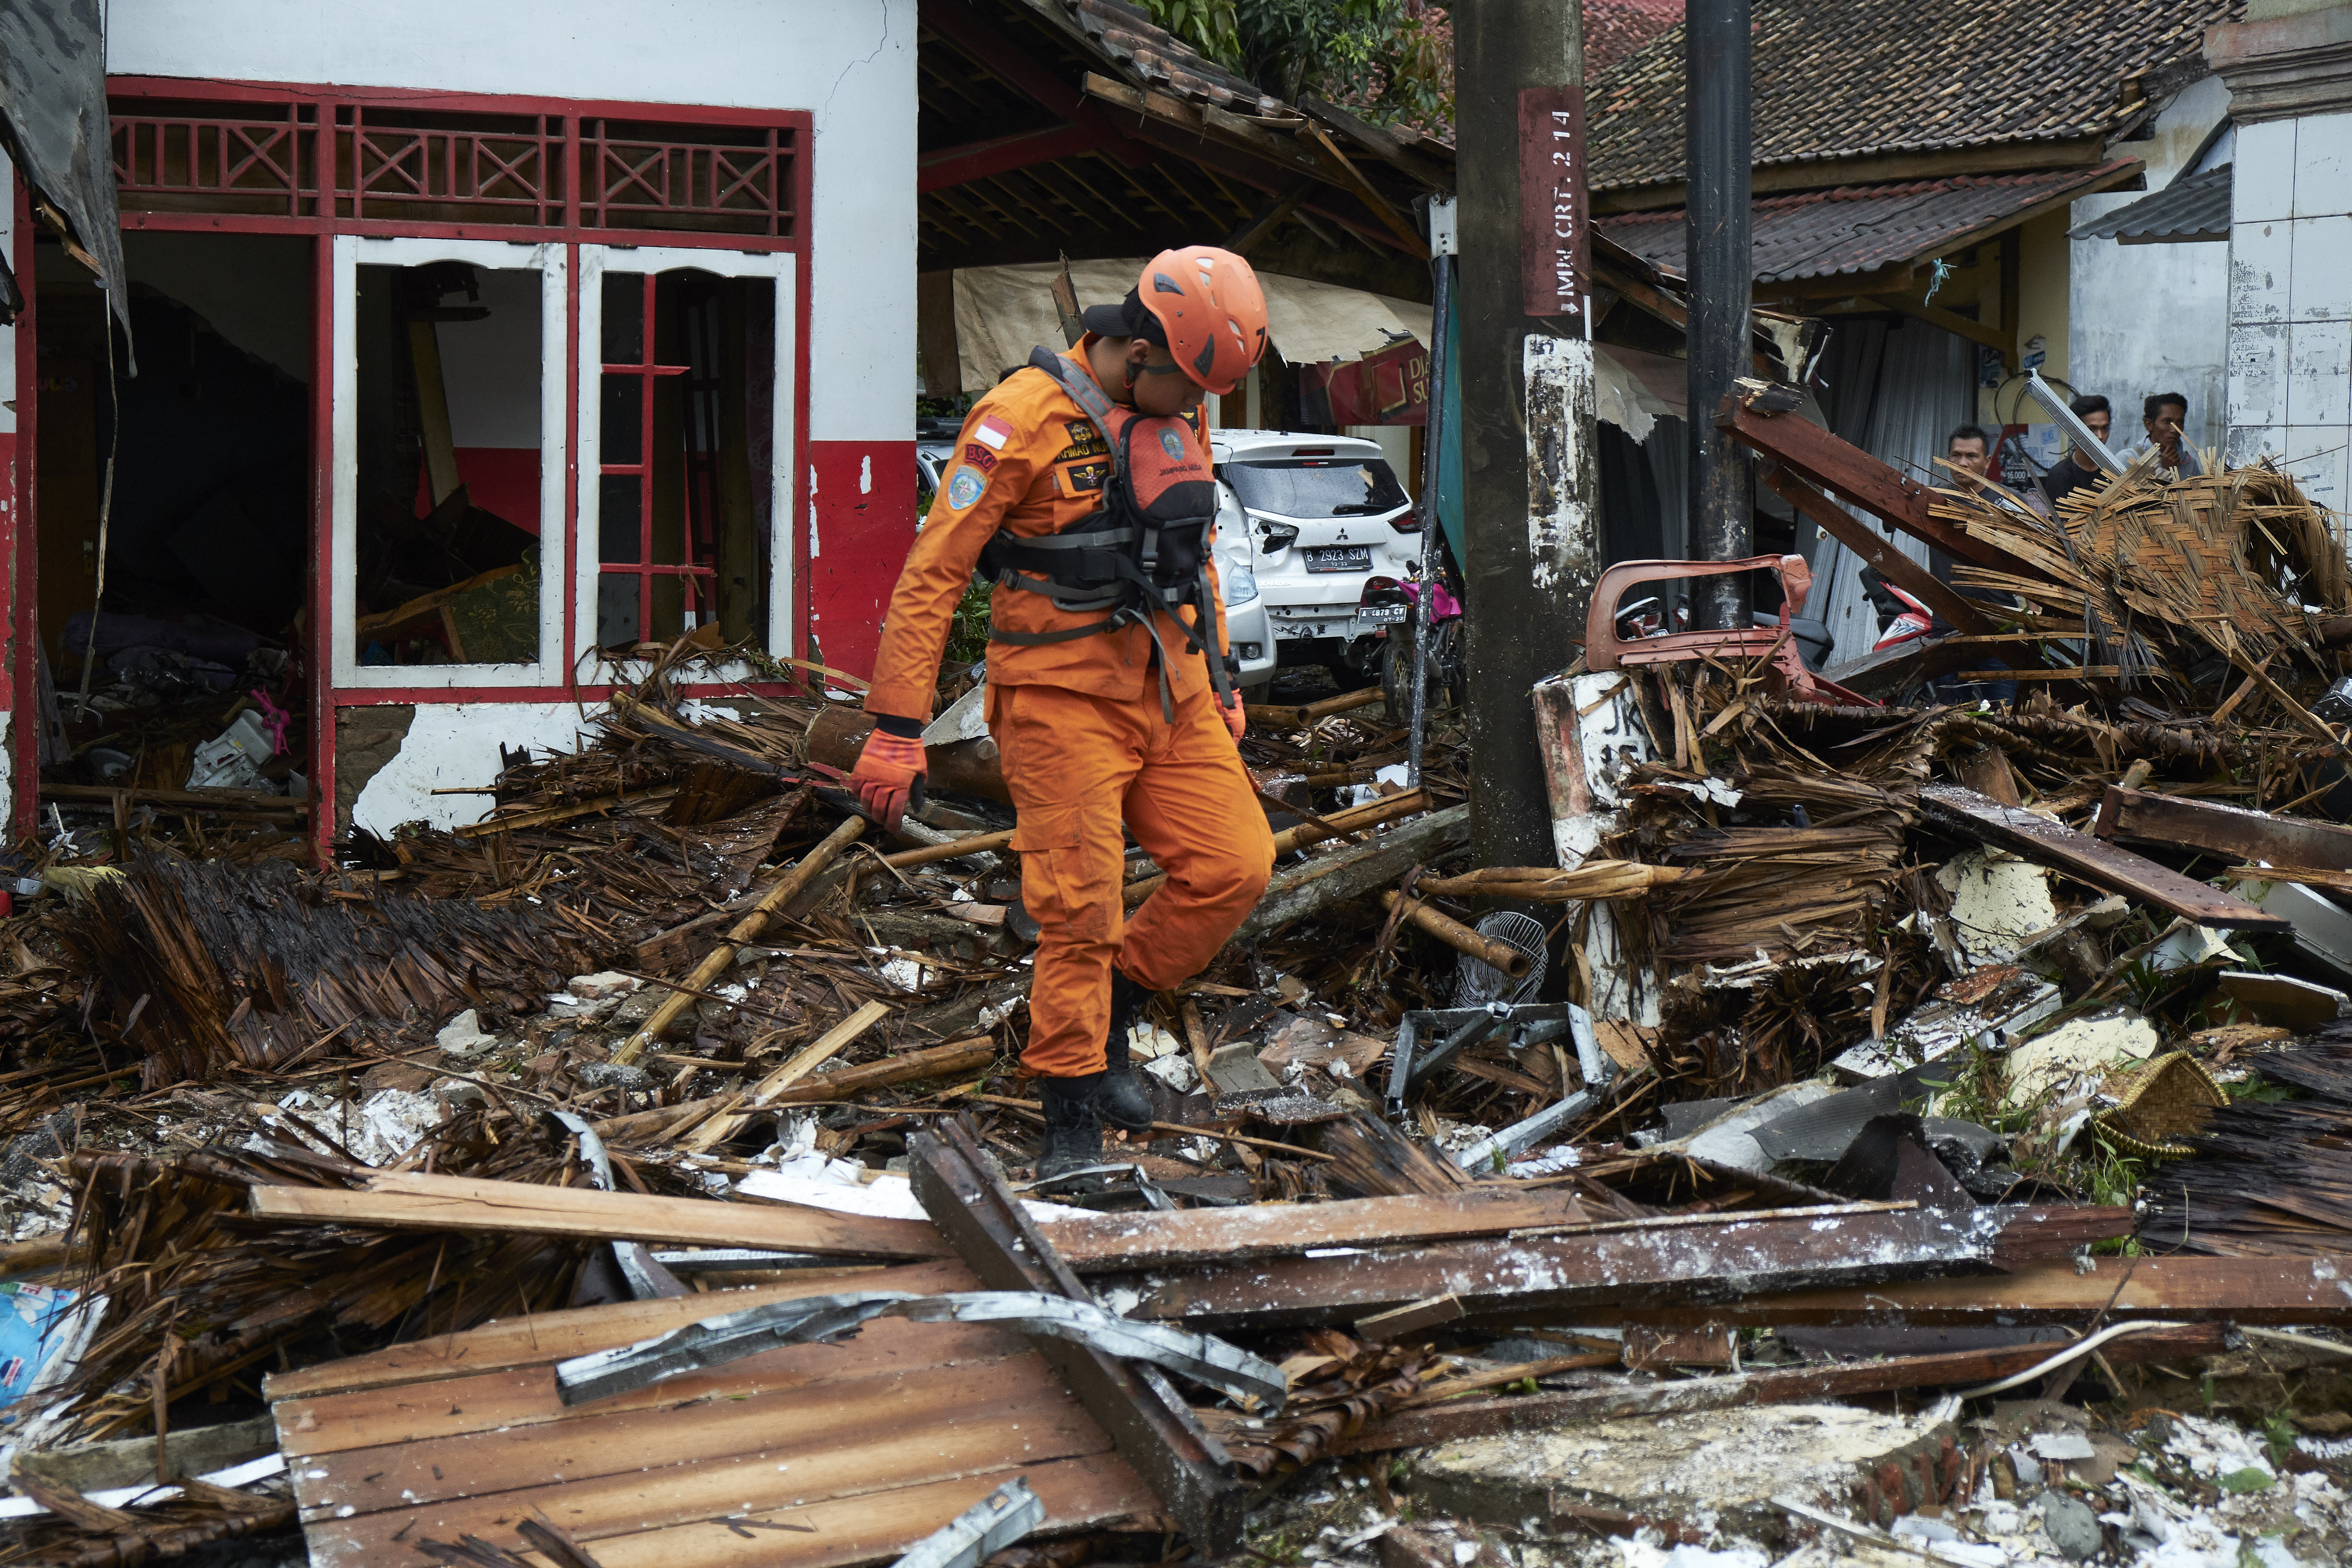 A rescue worker walks through the rubble from houses destroyed by a tsunami on December 23, 2018, in Carita, Indonesia. Over 220 people have reportedly been killed after a volcano-triggered tsunami hit the coast around Indonesia's Sunda Strait on Saturday night, injuring over 600 people. (Getty Images)